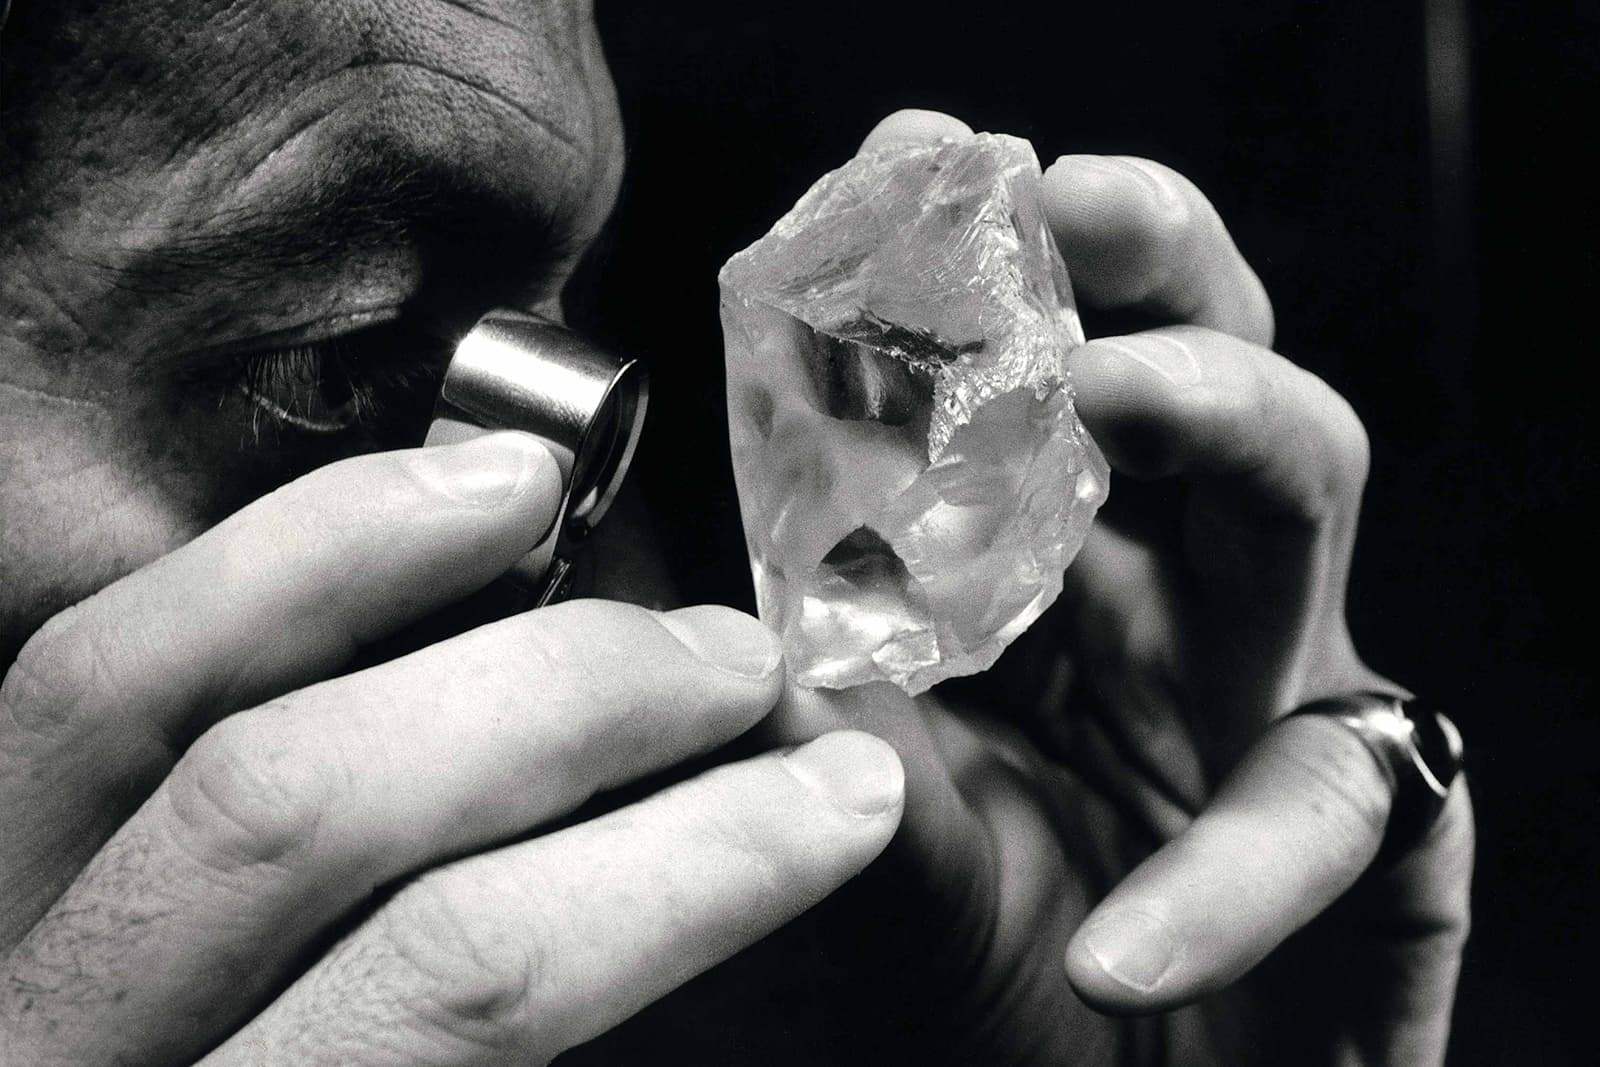 A gemmologist uses a loupe to examine the 603-carat Lesotho Promise rough diamond